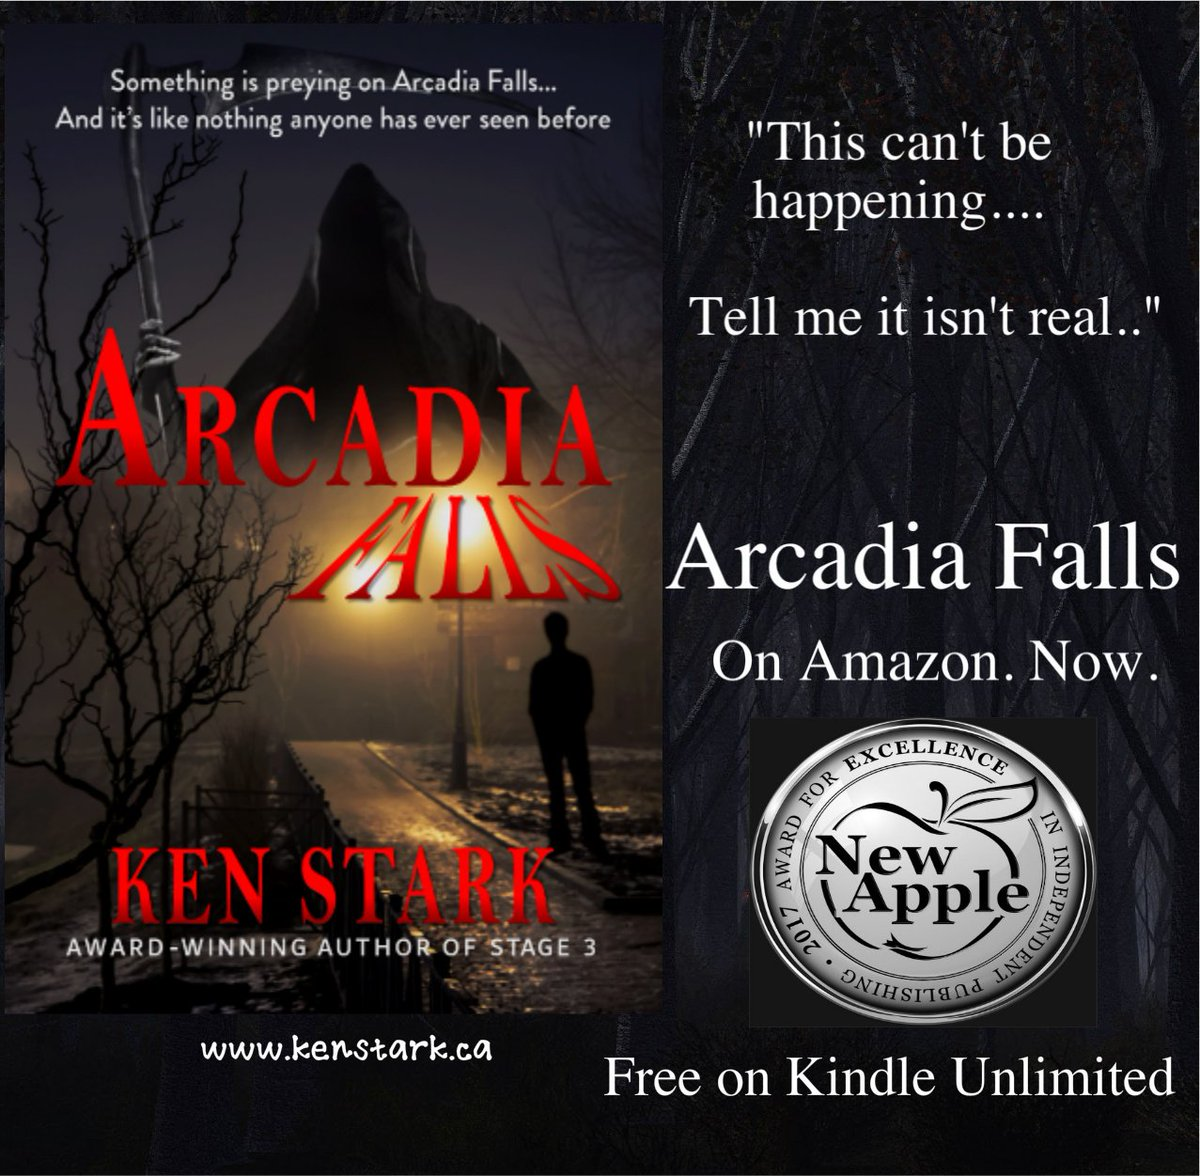 Something is preying on Arcadia Falls, and it&#39;s like nothing anyone has ever seen before....   https://www. amazon.com/dp/B077VVQVL4  &nbsp;     #horror #mystery #monster #thriller #IARTG @NewAppleAwards Read #ArcadiaFalls for #FREE on #KindleUnlimited<br>http://pic.twitter.com/vIZN5AZEJb